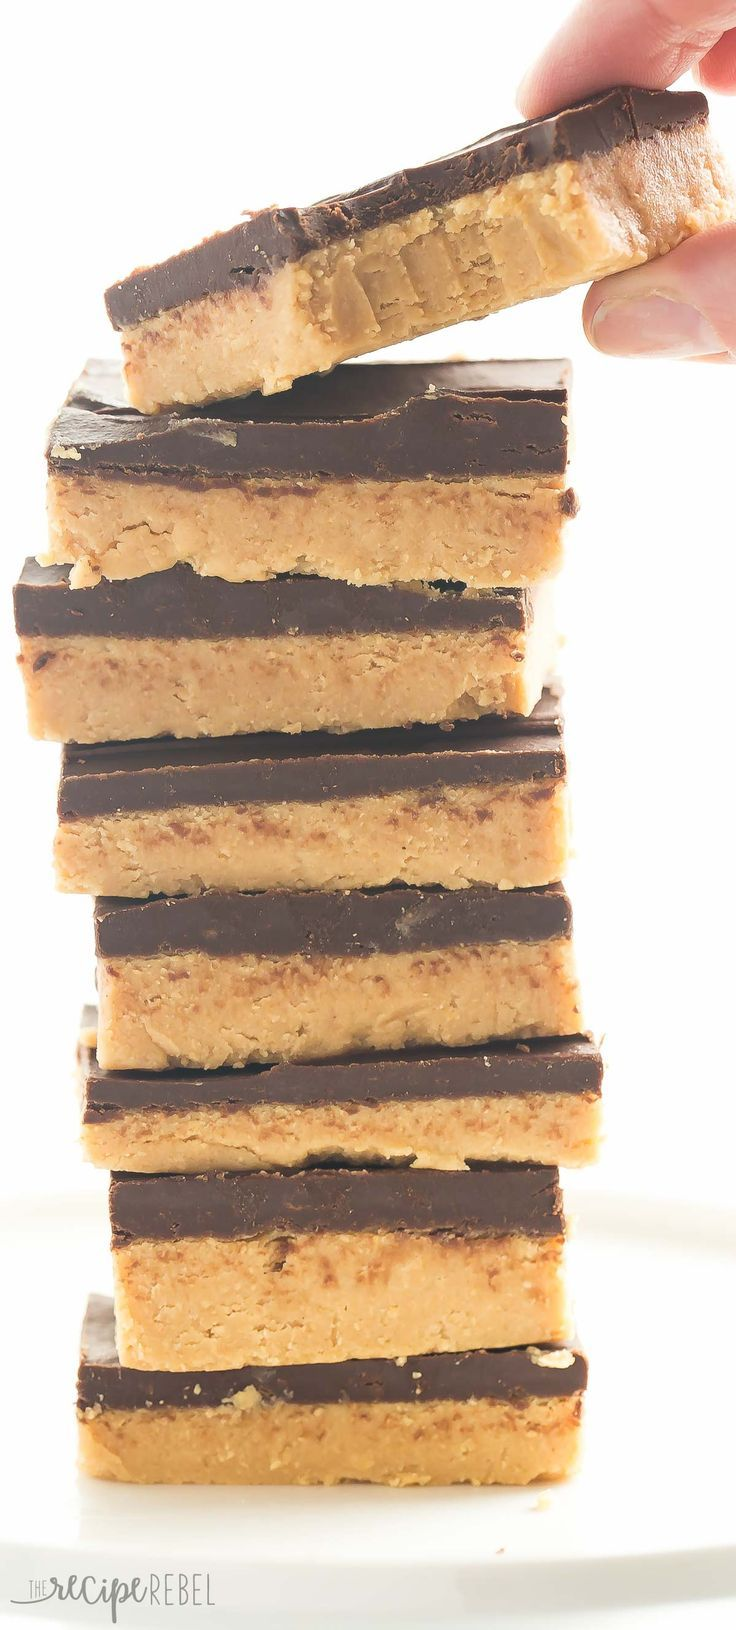 One ingredient makes these No Bake Chocolate Peanut Butter Bars BETTER than all the rest! They taste just like Reese's and are highly addictive! http://thereciperebel.com